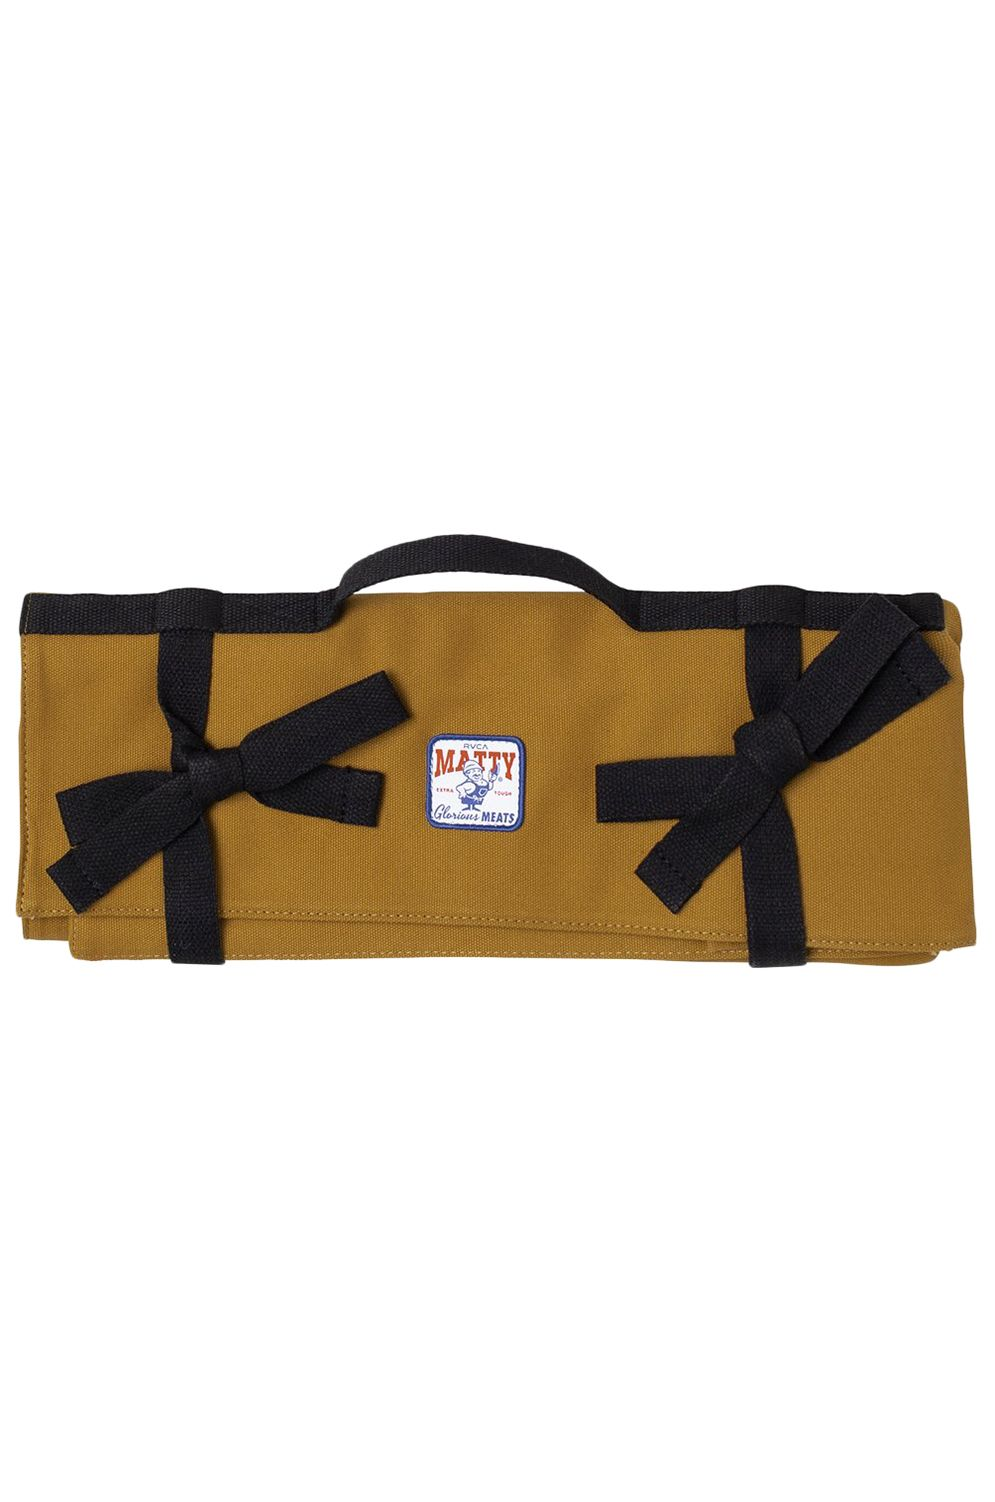 Bolsa RVCA MATTYS KNIFE ROLL Brown